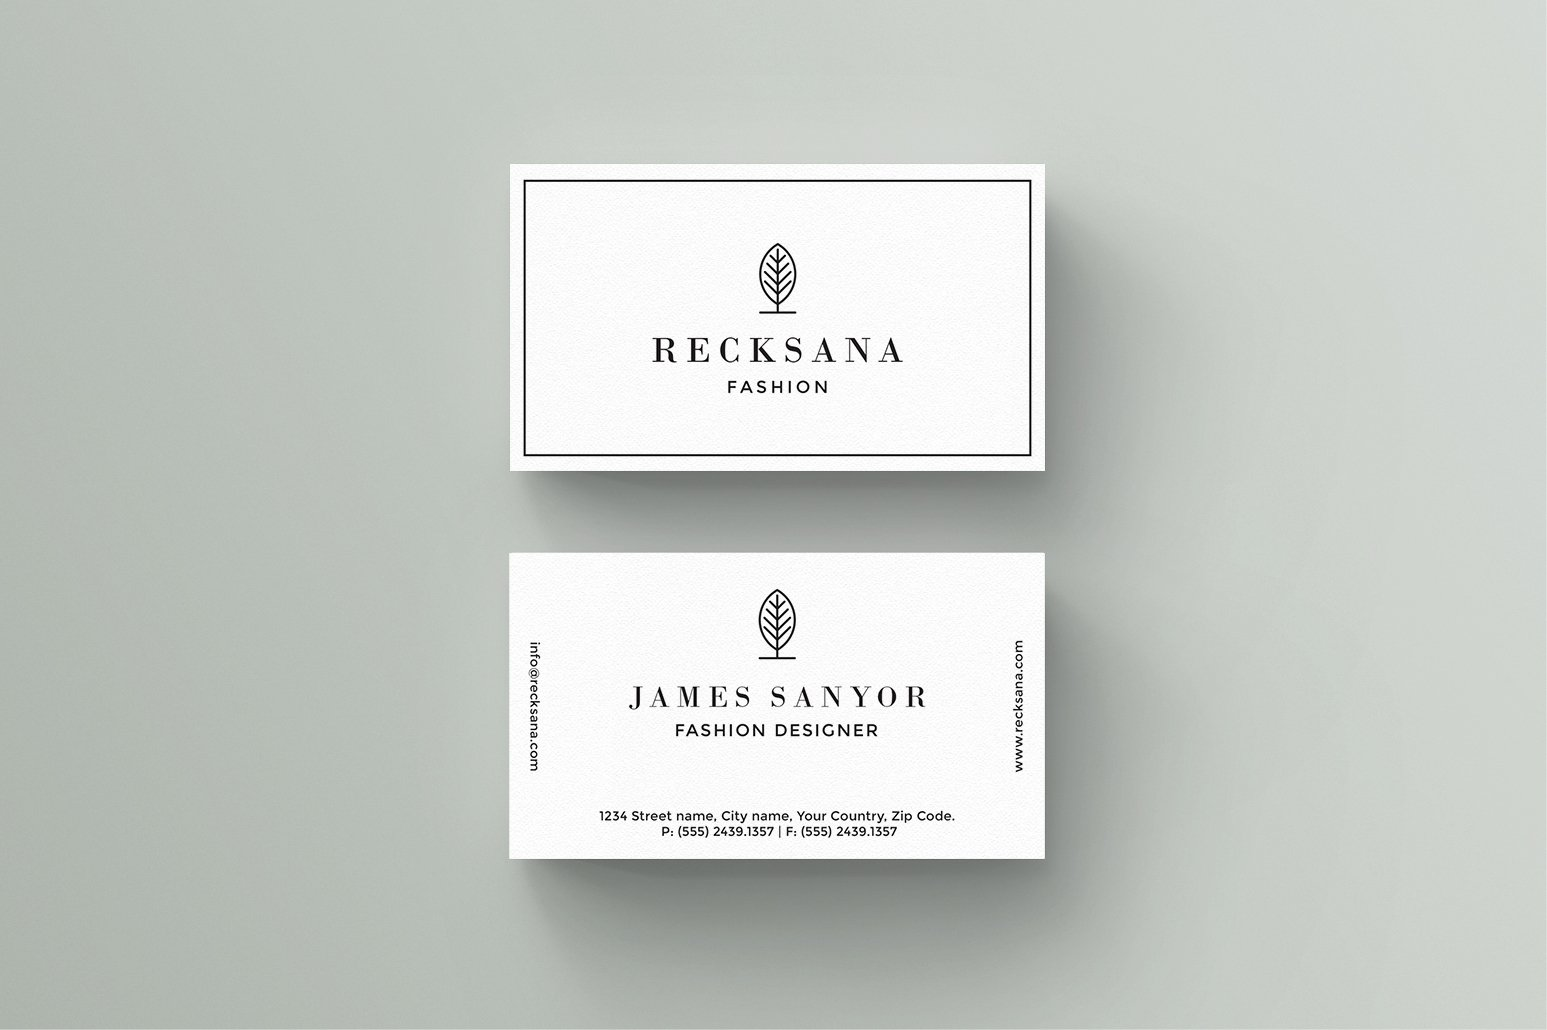 Recksana business card template business card templates creative recksana business card template business card templates creative market flashek